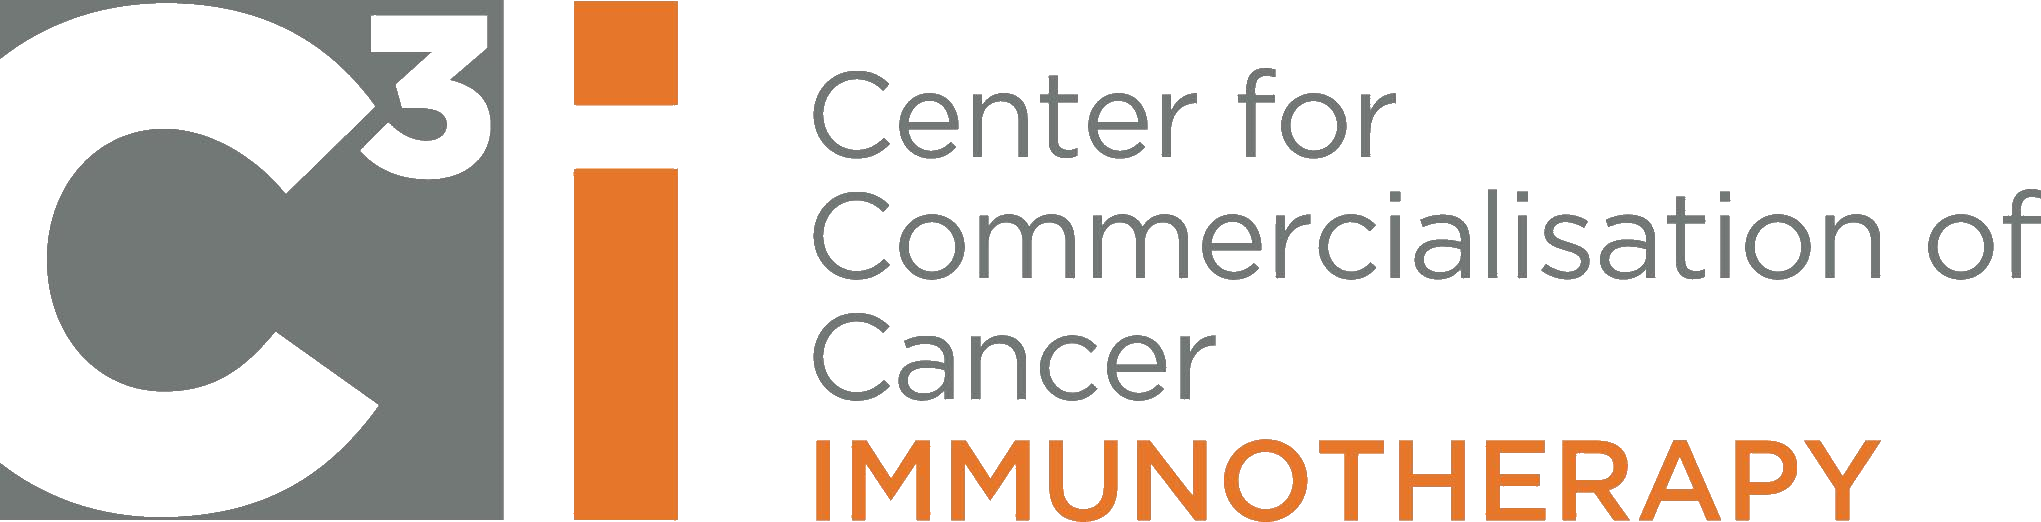 Centre for Commercialization of Cancer Immunotherapy (C3i)